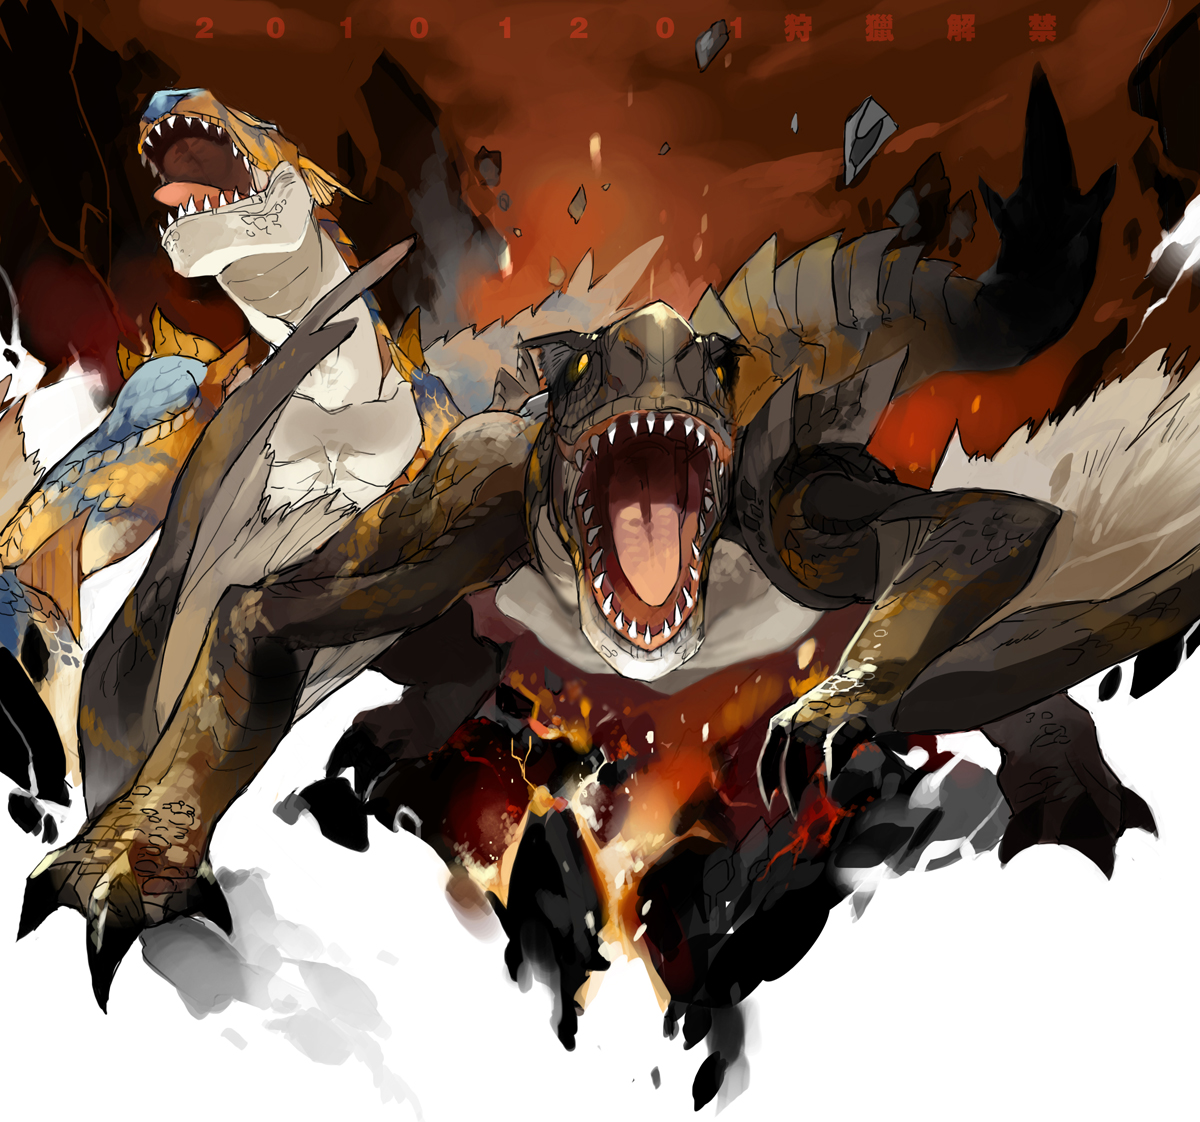 Tigrex And Brute Tigrex Monster Hunter Drawn By Starshadowmagician Danbooru Brute tigrex shows up at level 6 while the tempered version shows up at level 7. brute tigrex monster hunter drawn